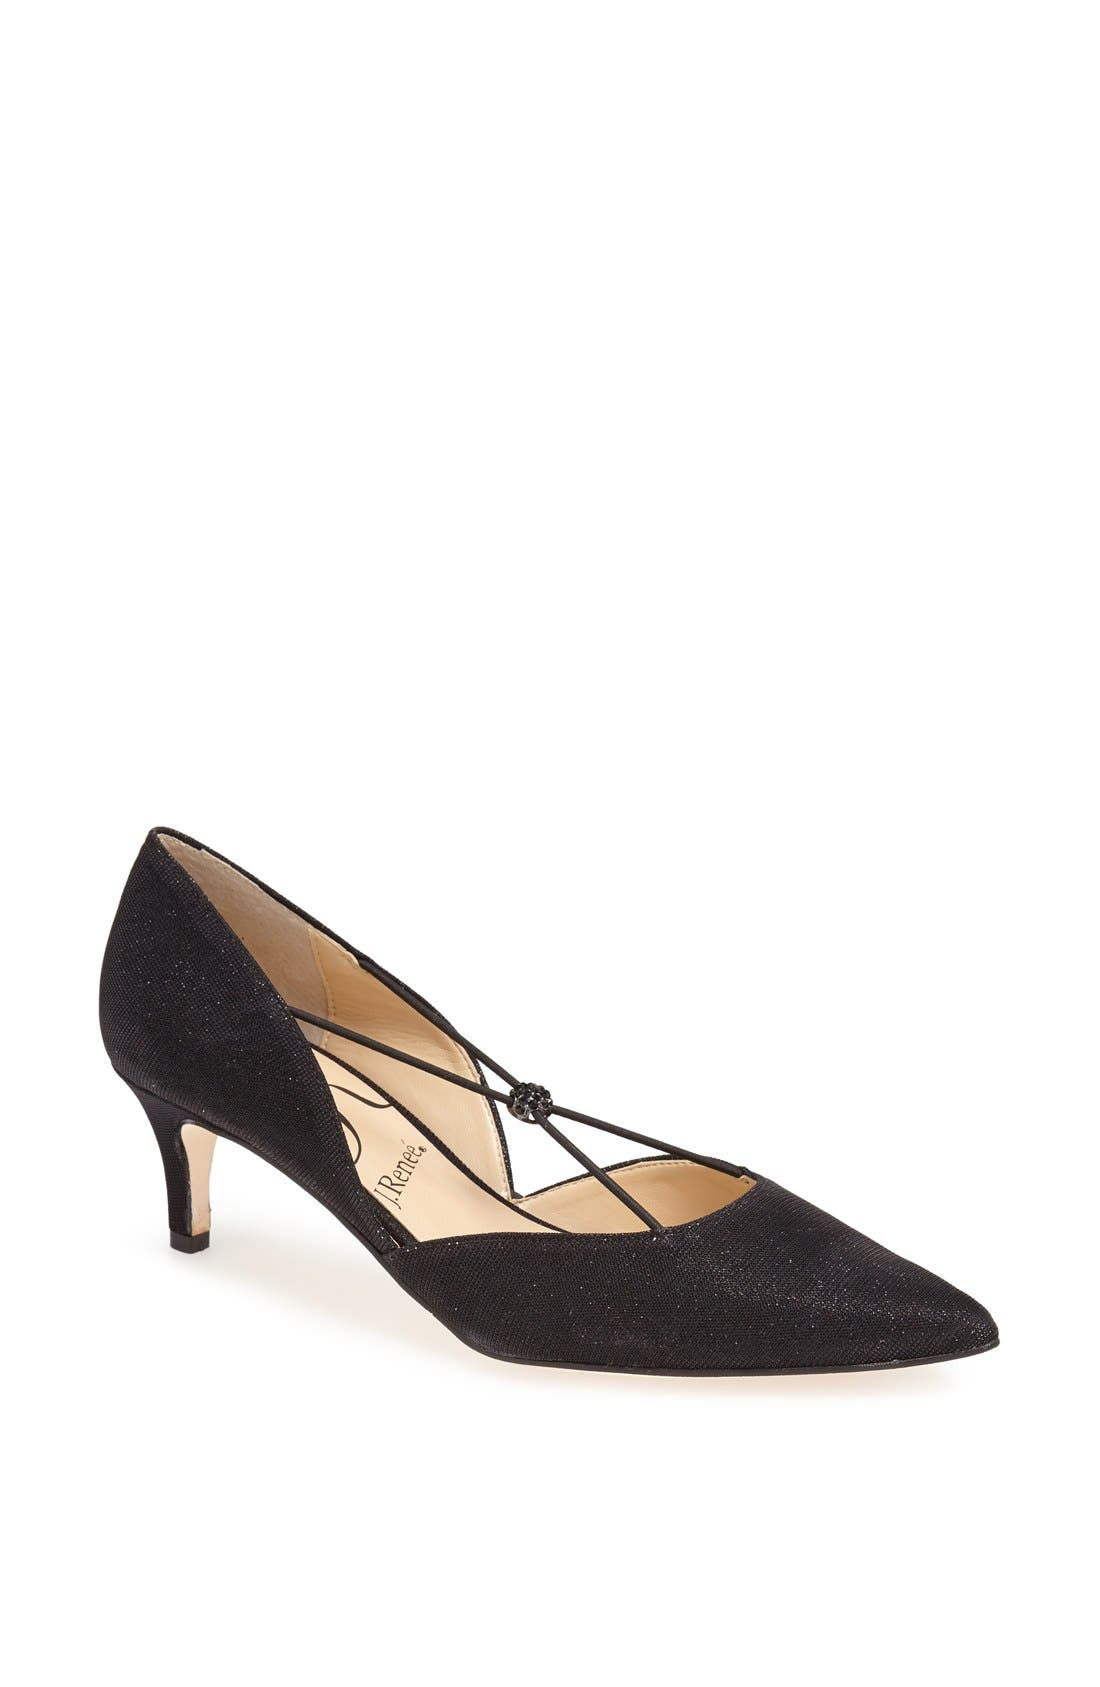 J. Reneé 'Veeva' Pump